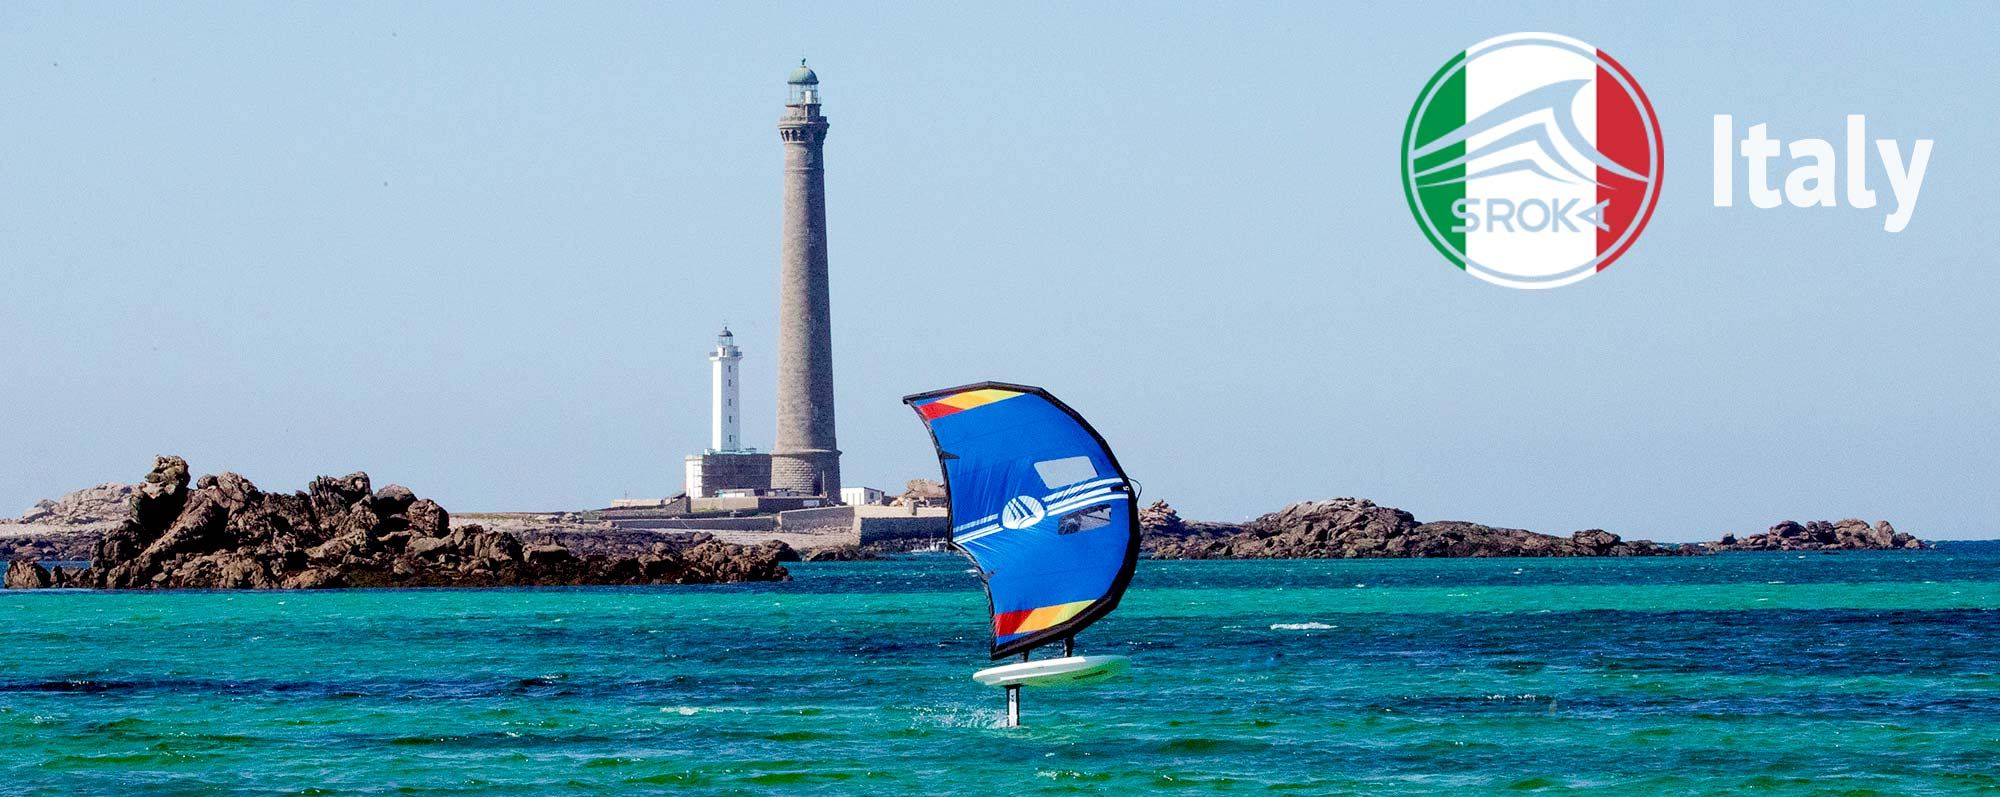 Buy a wing foil in Italy, a surf foil, a SUP foil, a kite foil, a wind foil or a stand-up paddle.